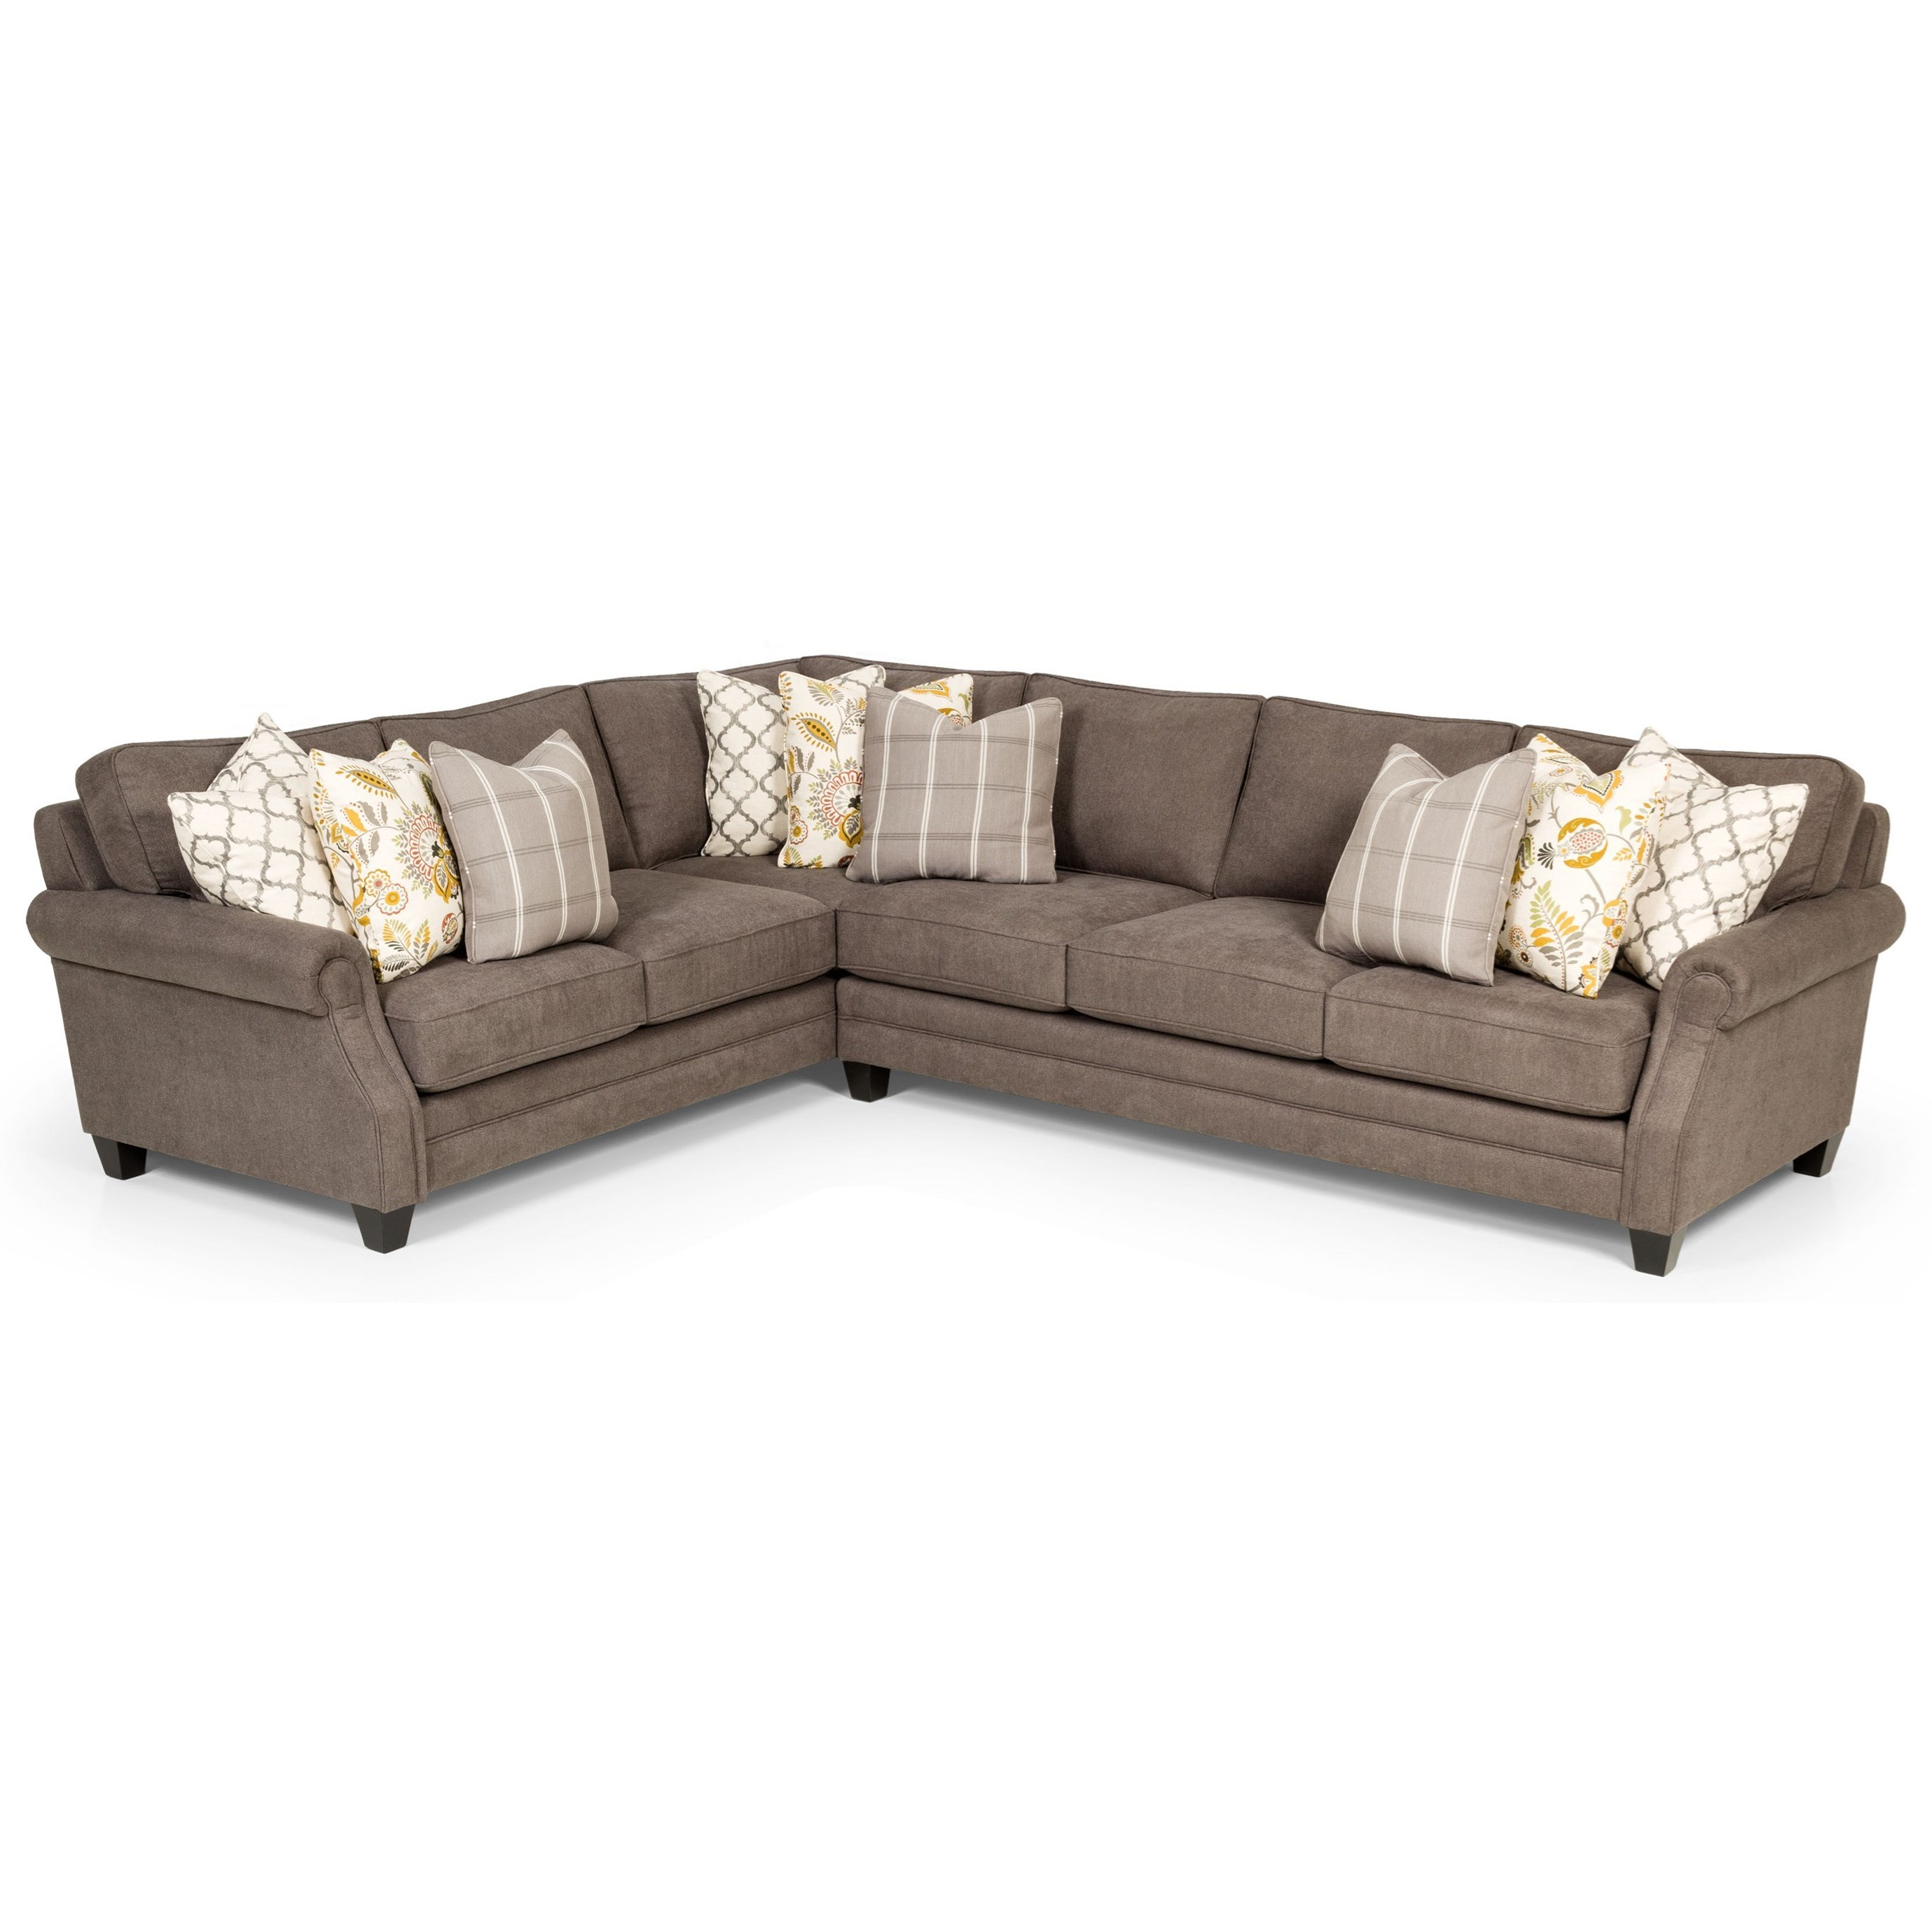 399 Sectional by Stanton at Wilson's Furniture